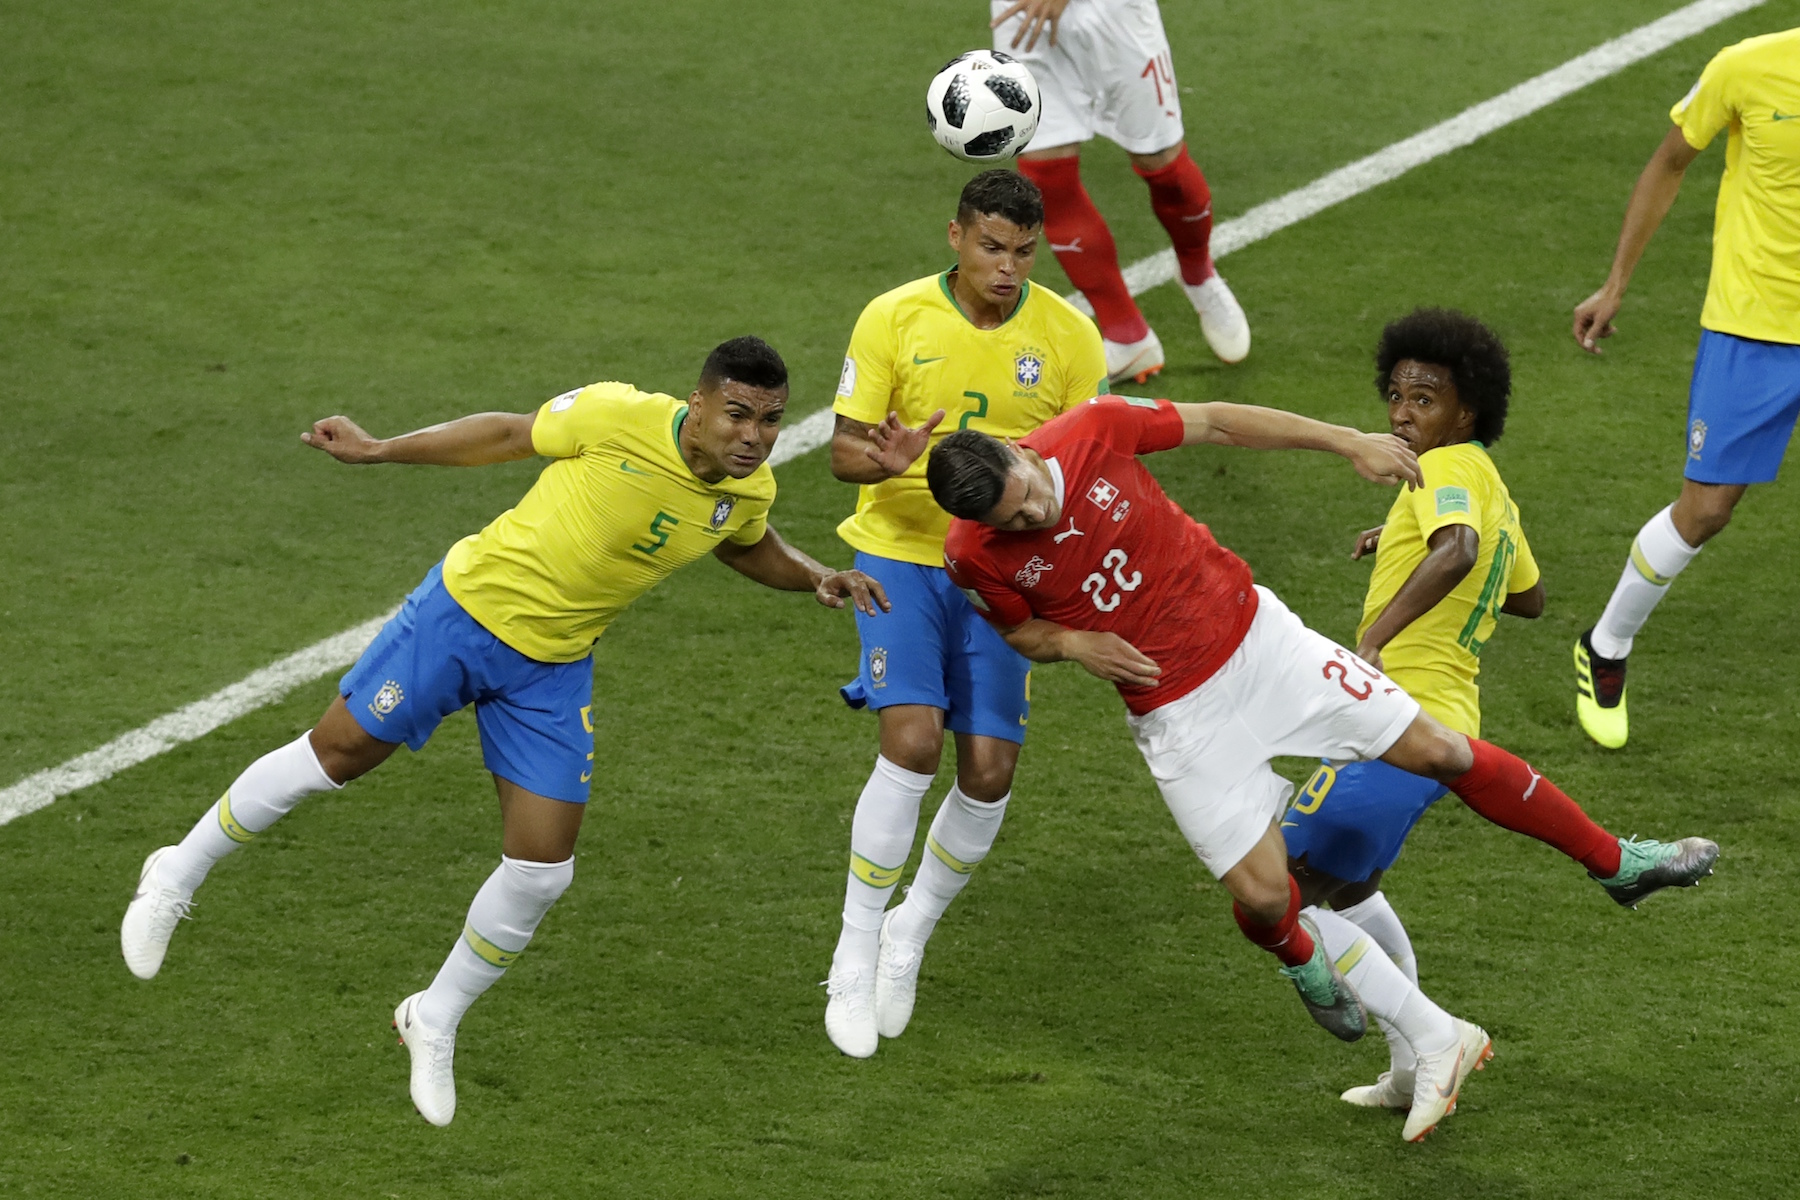 "<div class=""meta image-caption""><div class=""origin-logo origin-image ap""><span>AP</span></div><span class=""caption-text"">Brazil's Casemiro, left, Thiago Silvaand, center, and Switzerland's Fabian Schaer jump for the ball during the group E match between Brazil and Switzerland. (AP Photo/Andrew Medichini)</span></div>"